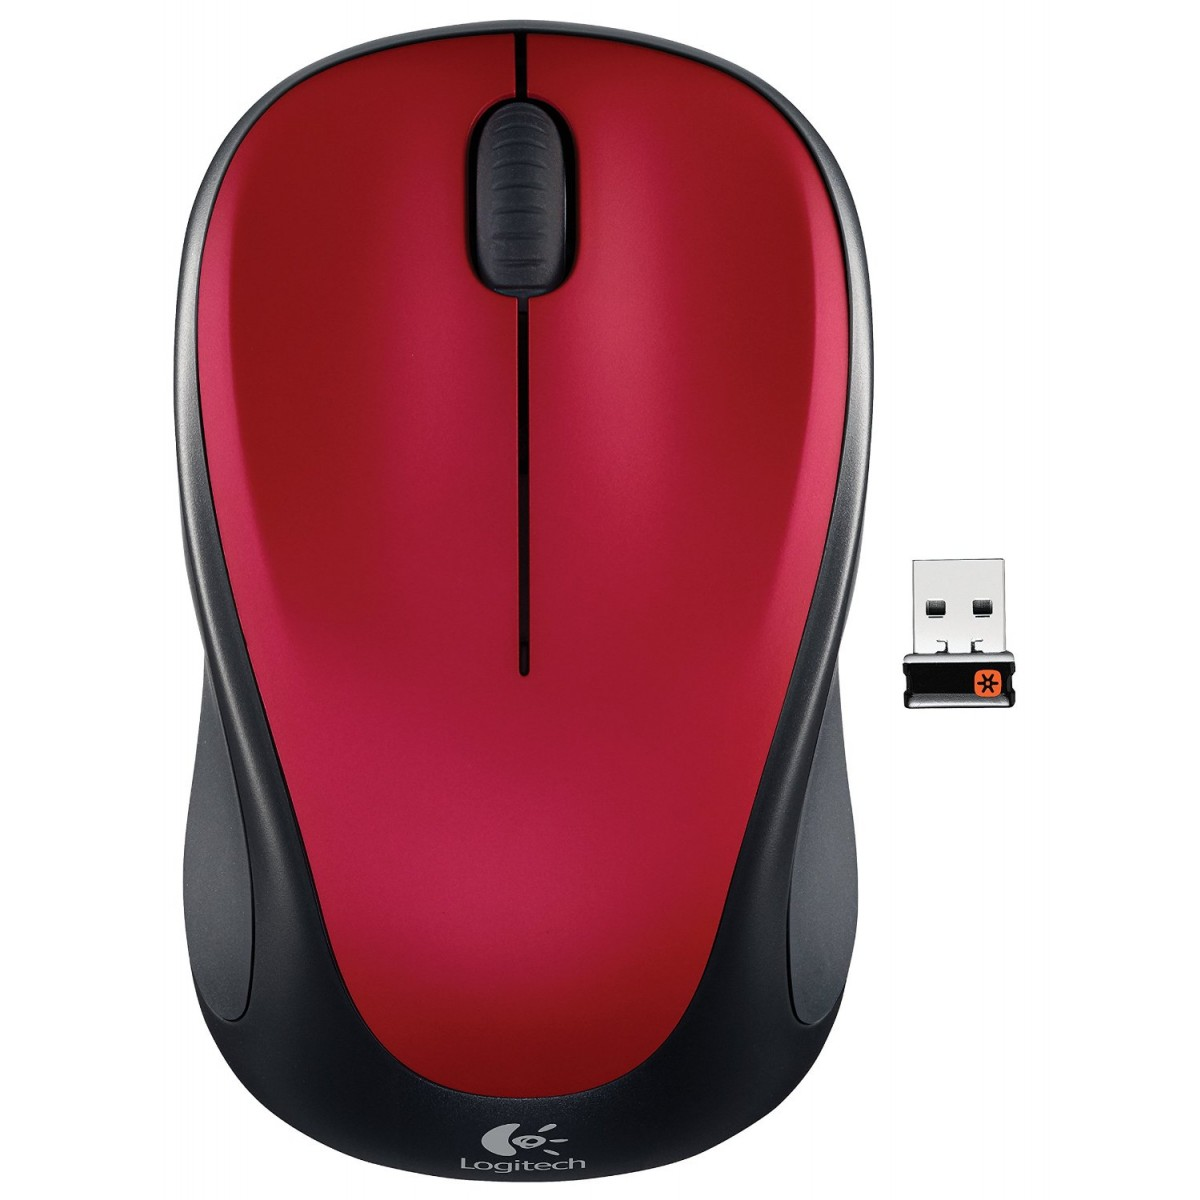 Logitech M317 Mouse Unifying Driver for Windows 10